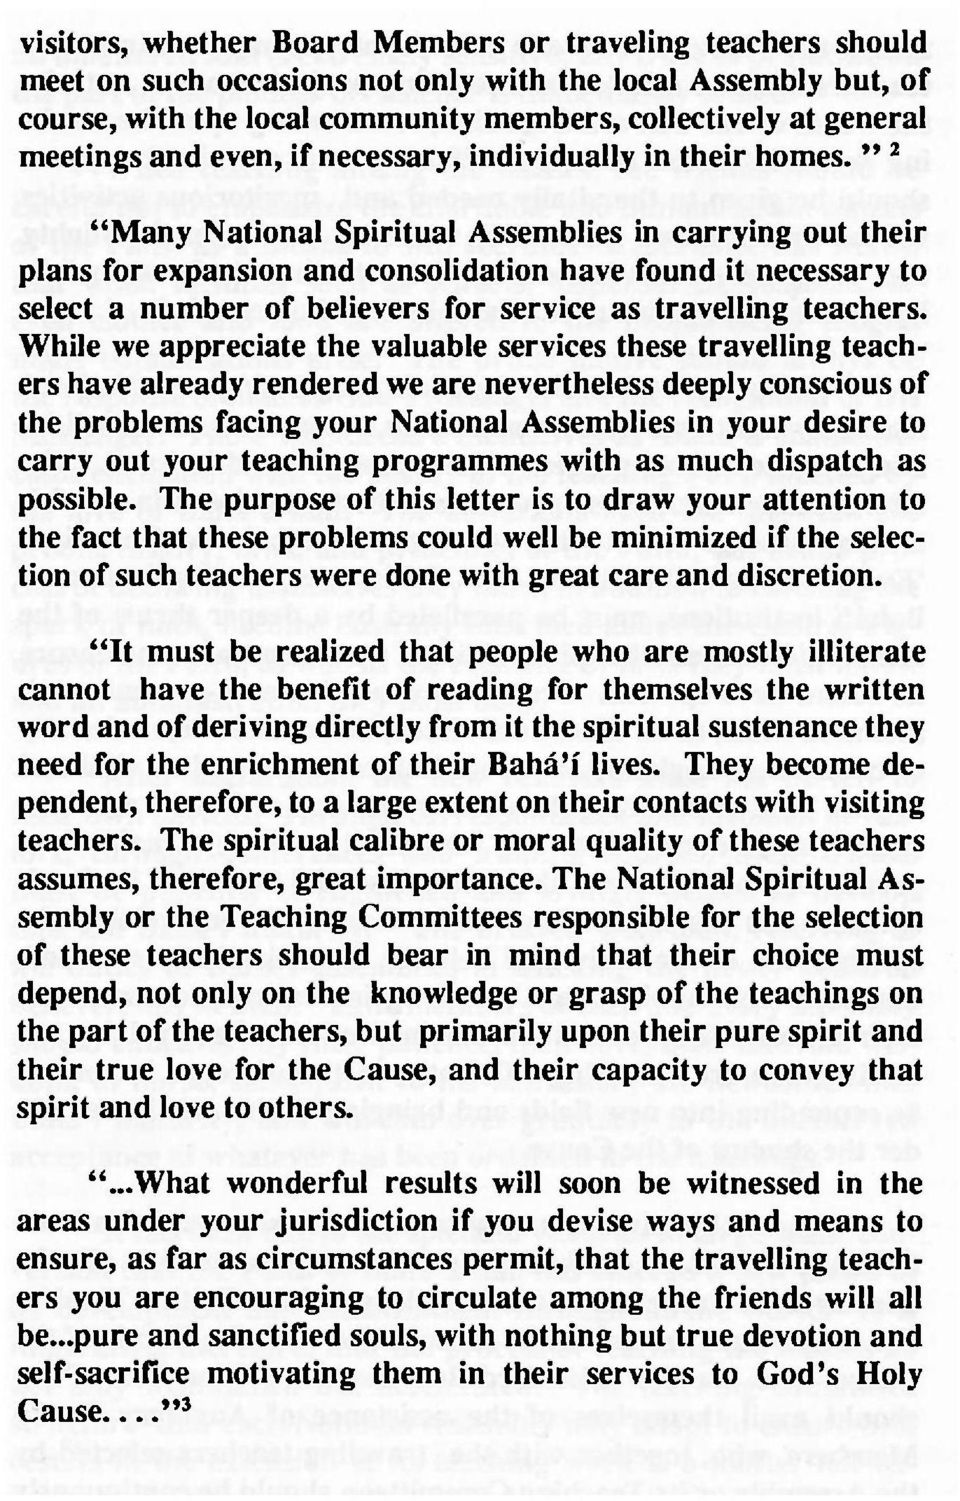 """ 2 ""Many National Spiritual Assemblies in carrying out their plans for expansion and consolidation have found it necessary to select a number of believers for service as travelling teachers."